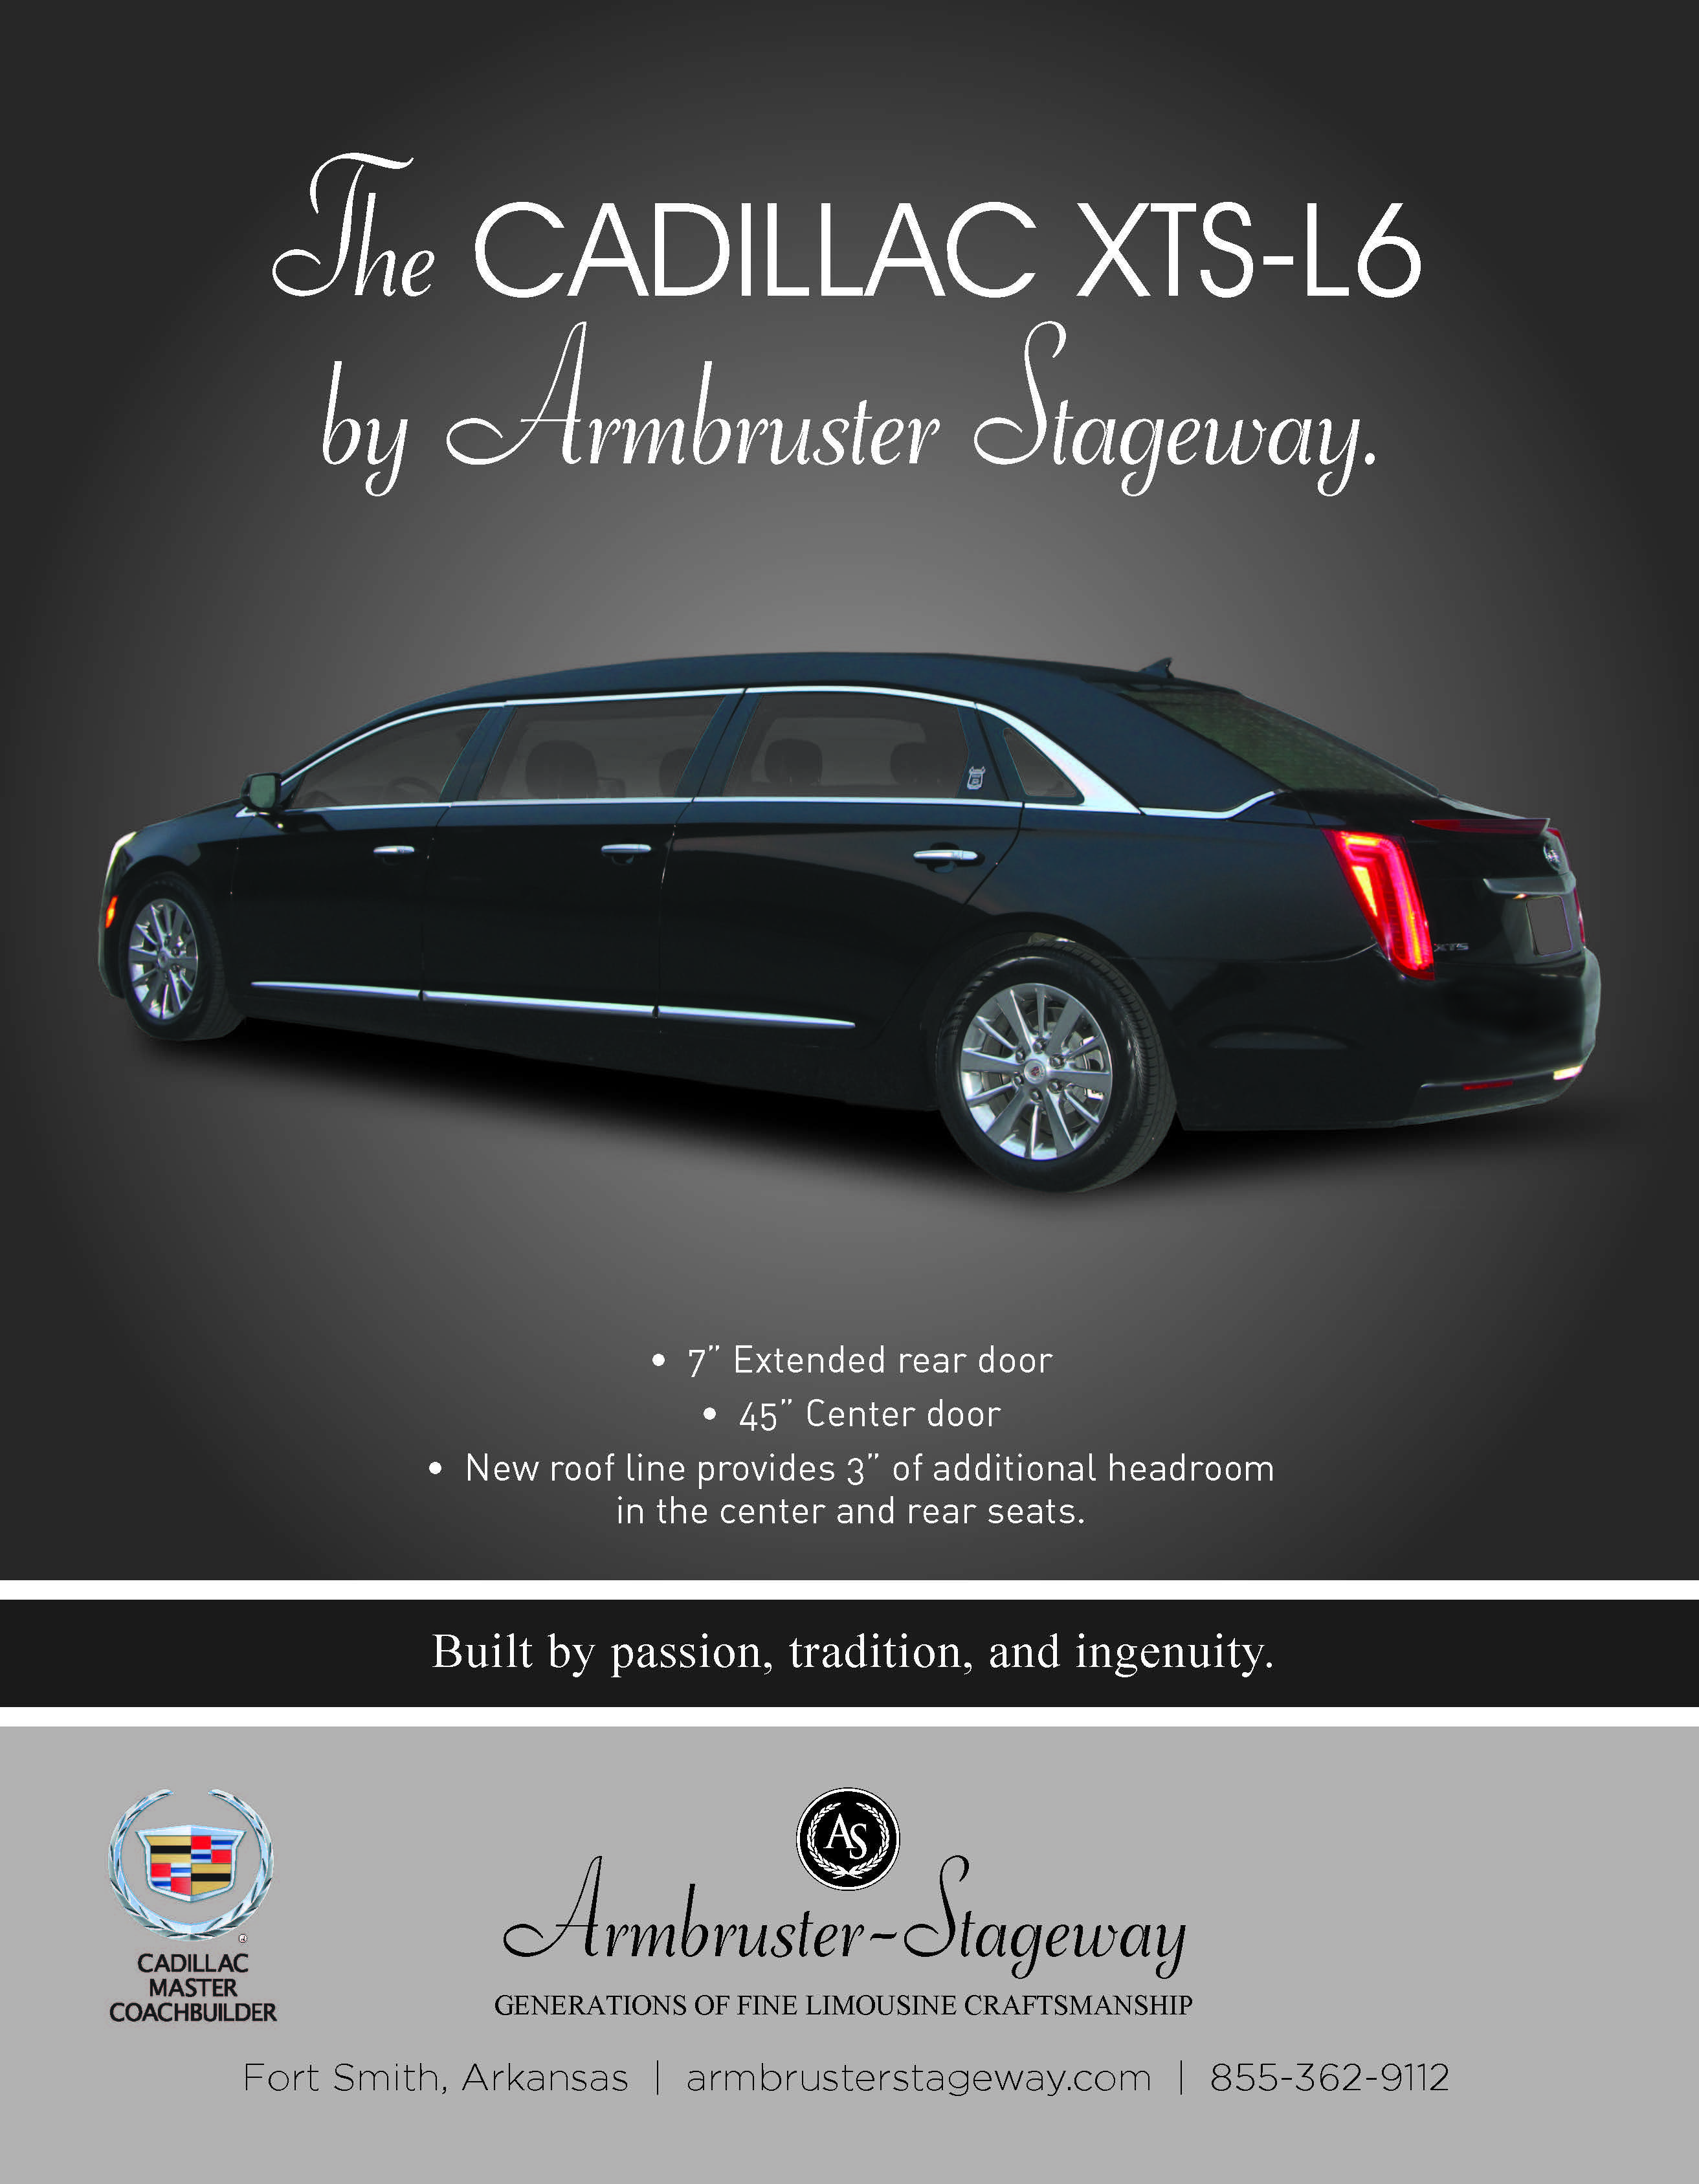 Armbruster Stageway Limousine Cadillac Limos Pinterest - Arkansas cadillac dealers